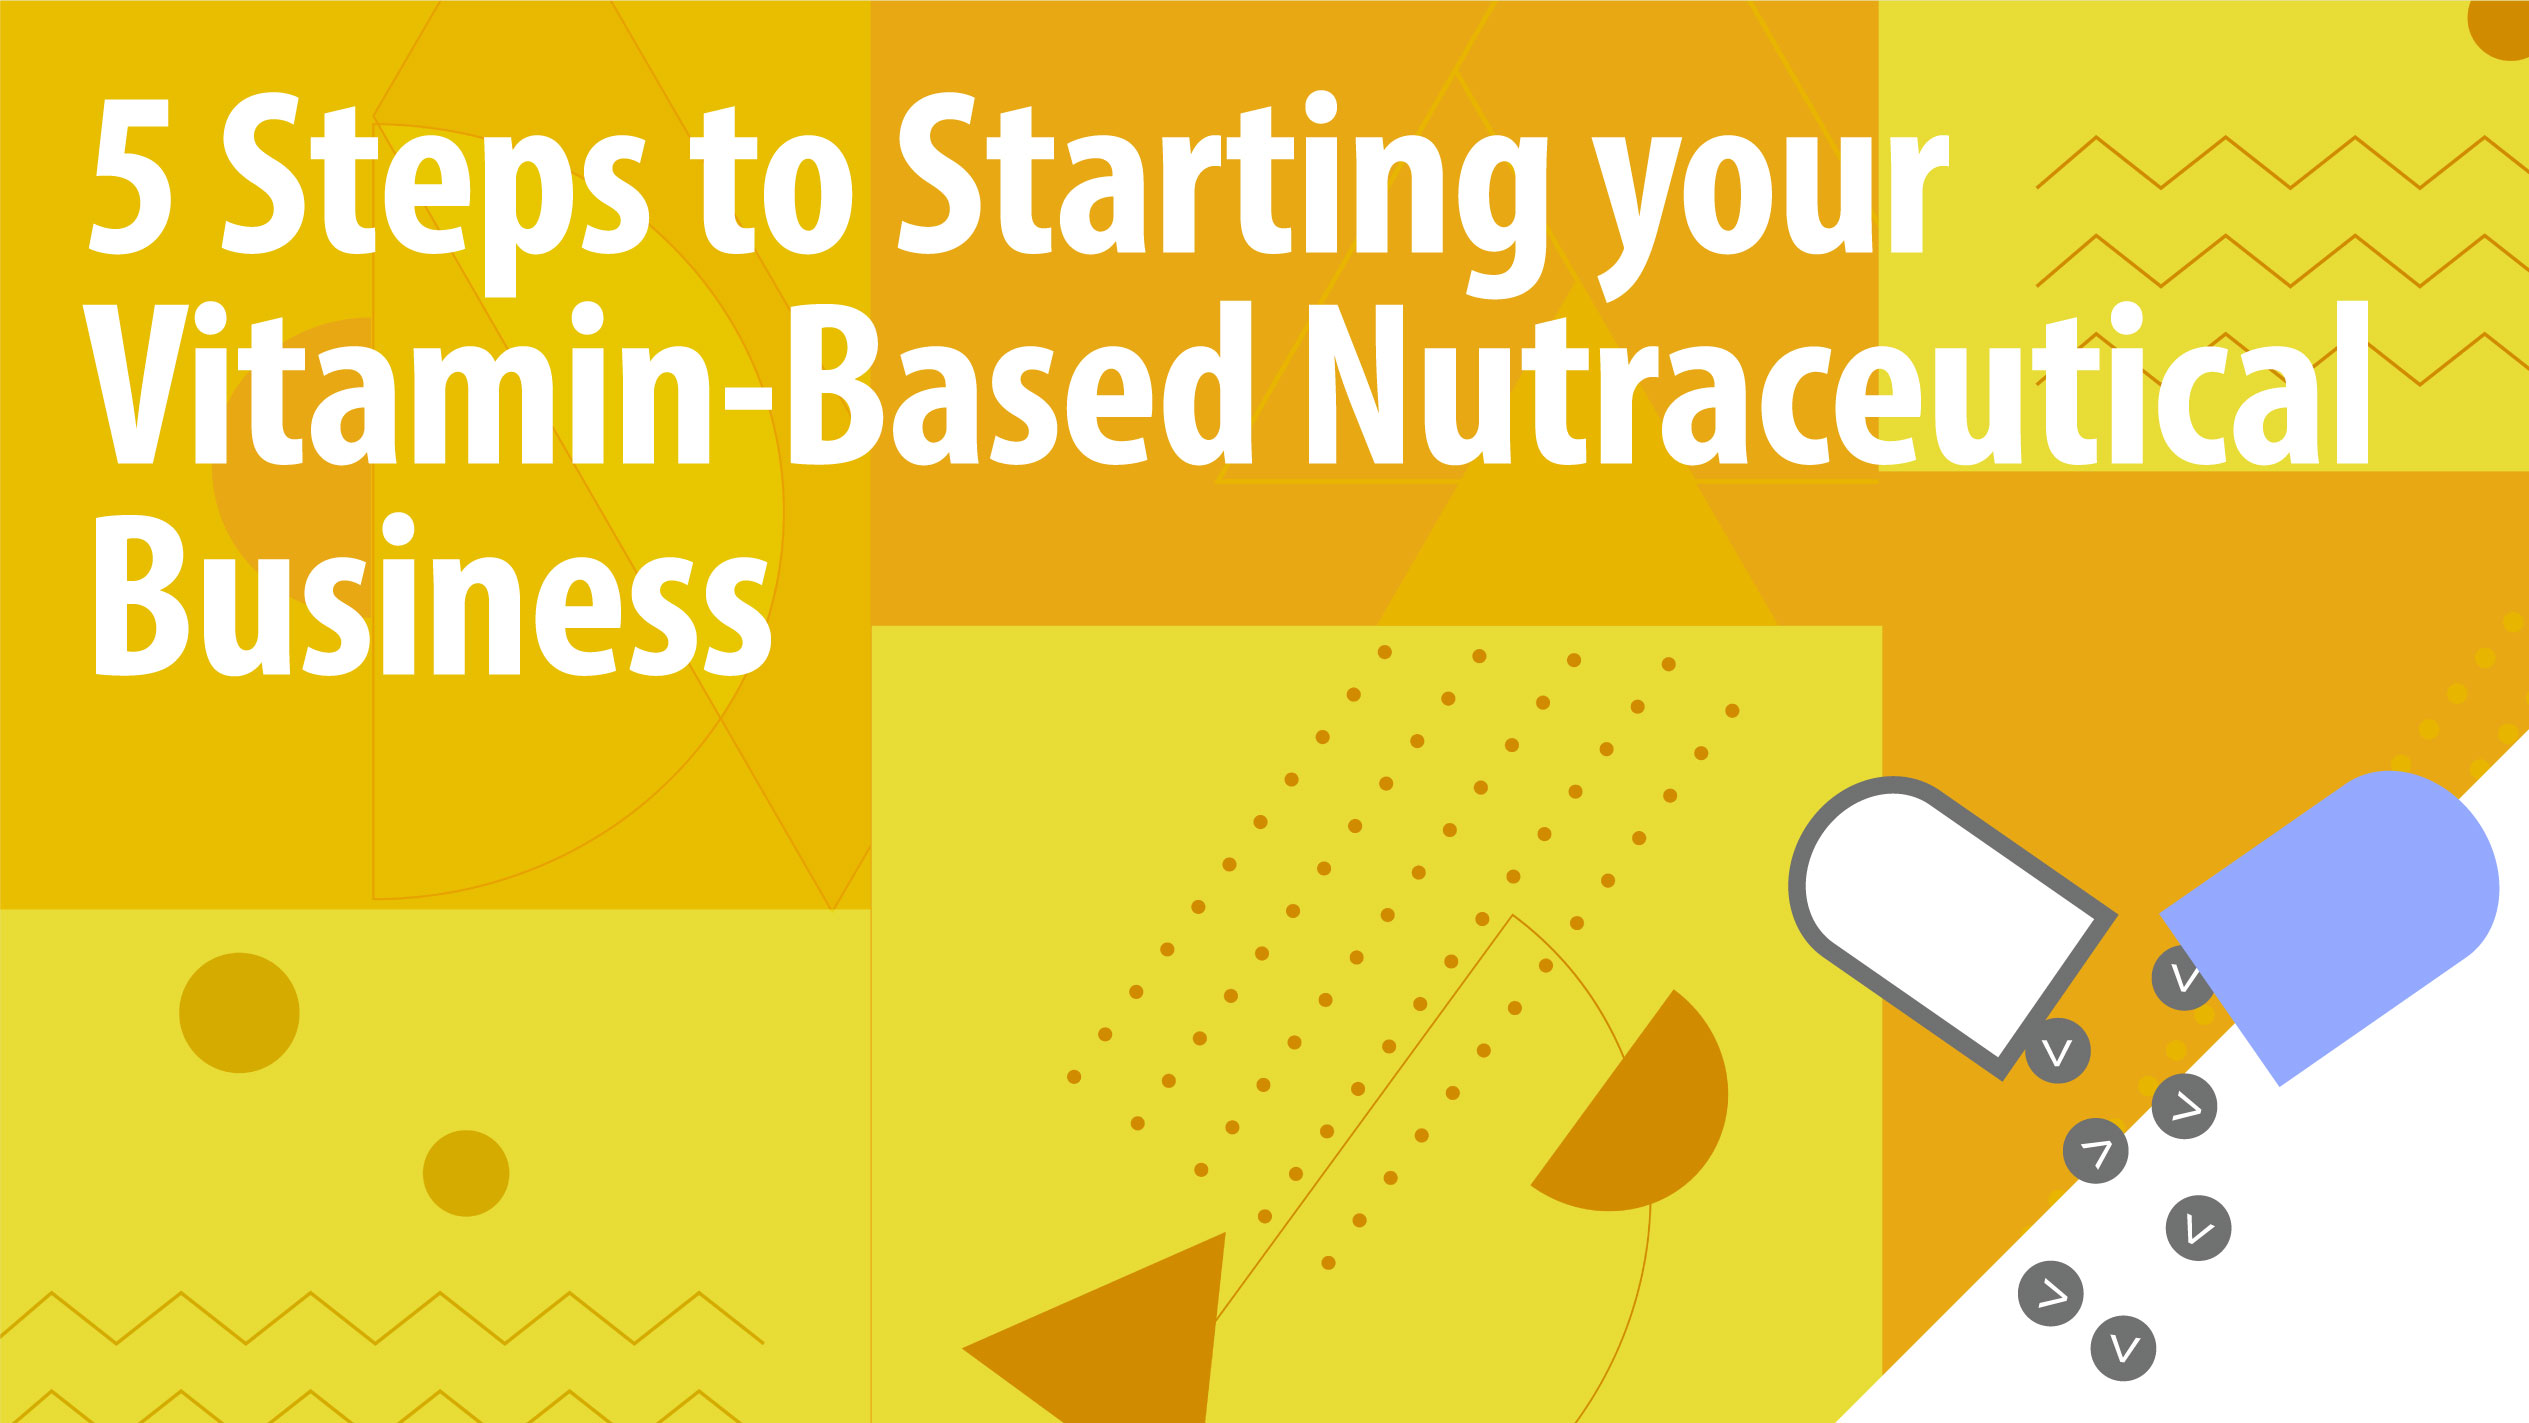 5 Steps to Starting your Vitamin-Based Nutraceutical Business